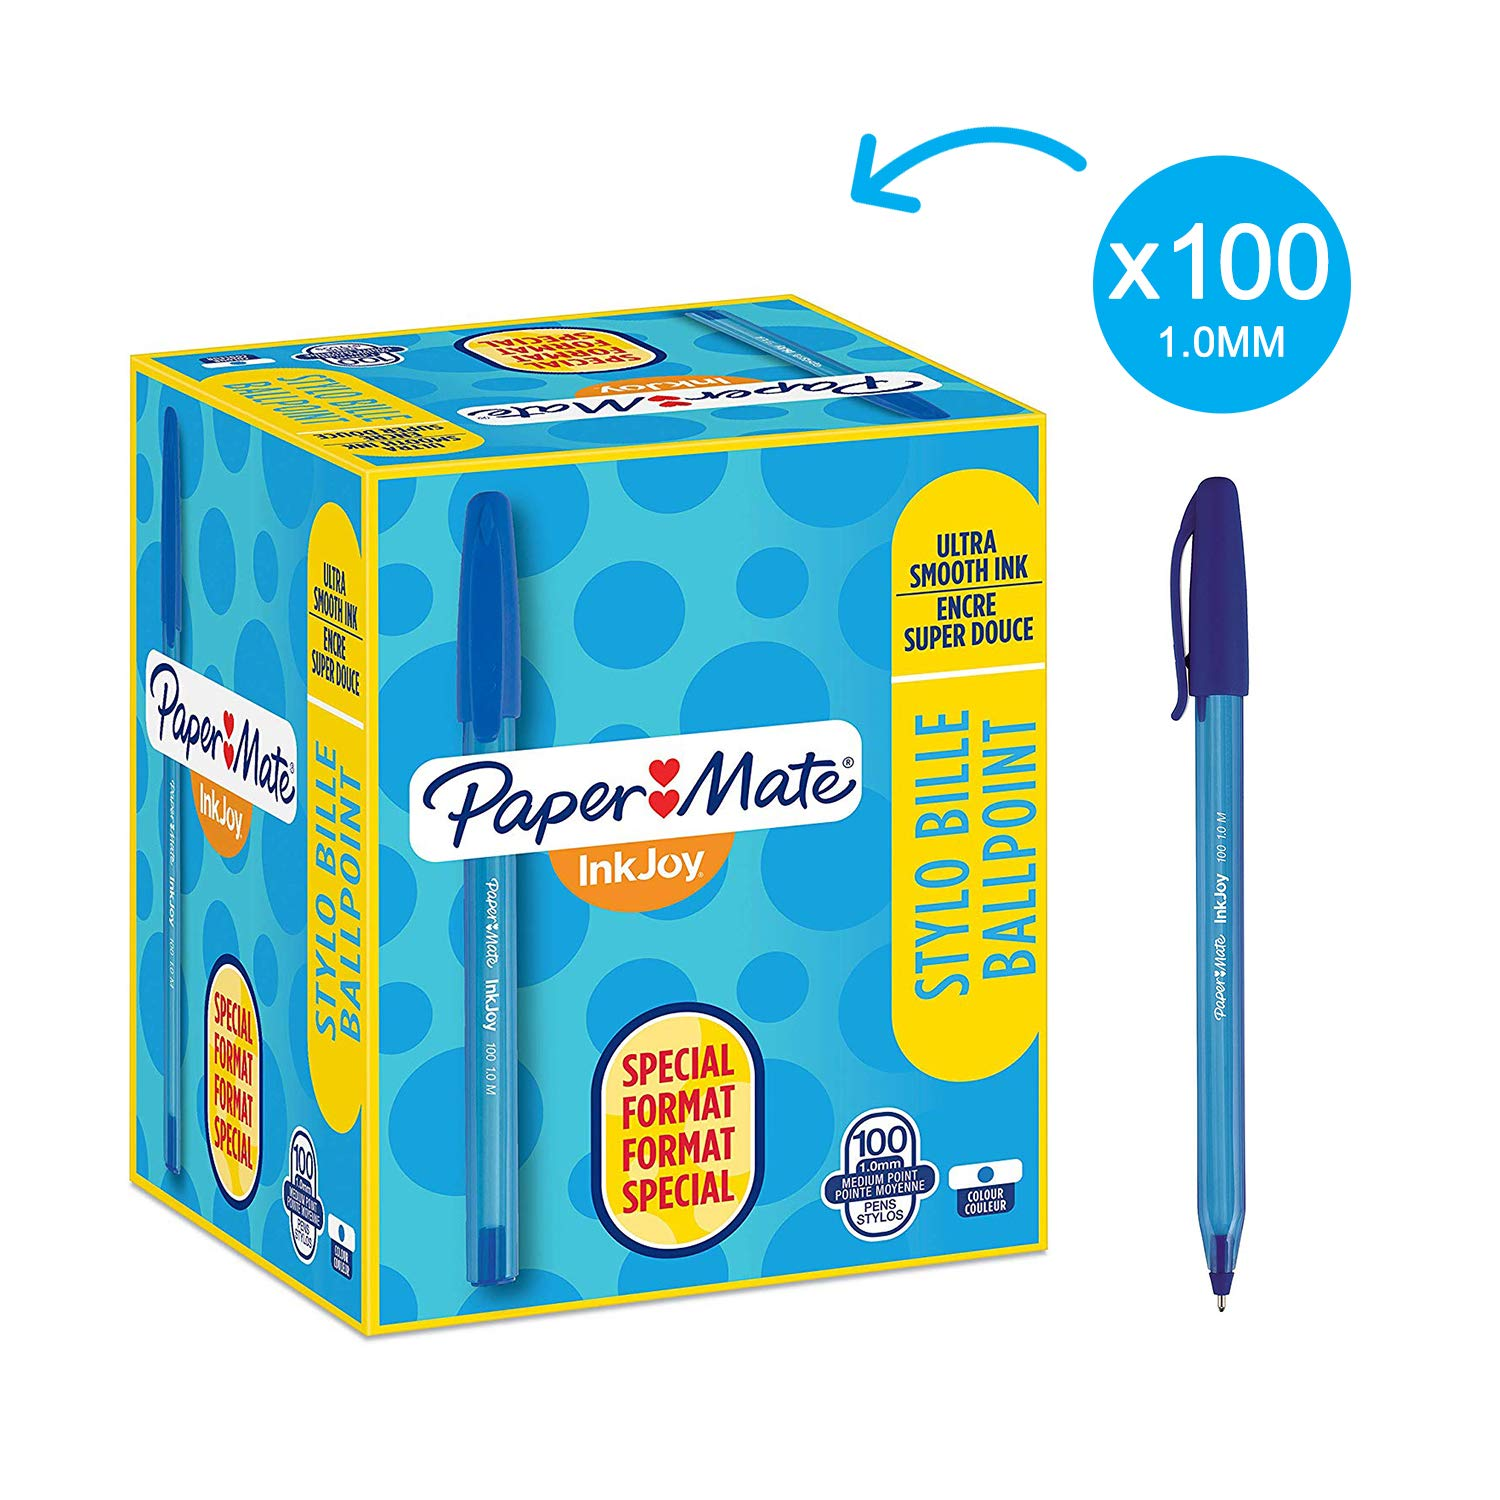 Pack of 80 20 Paper Mate InkJoy 100 ST Ball Pen with 1.0 mm Medium Tip Black